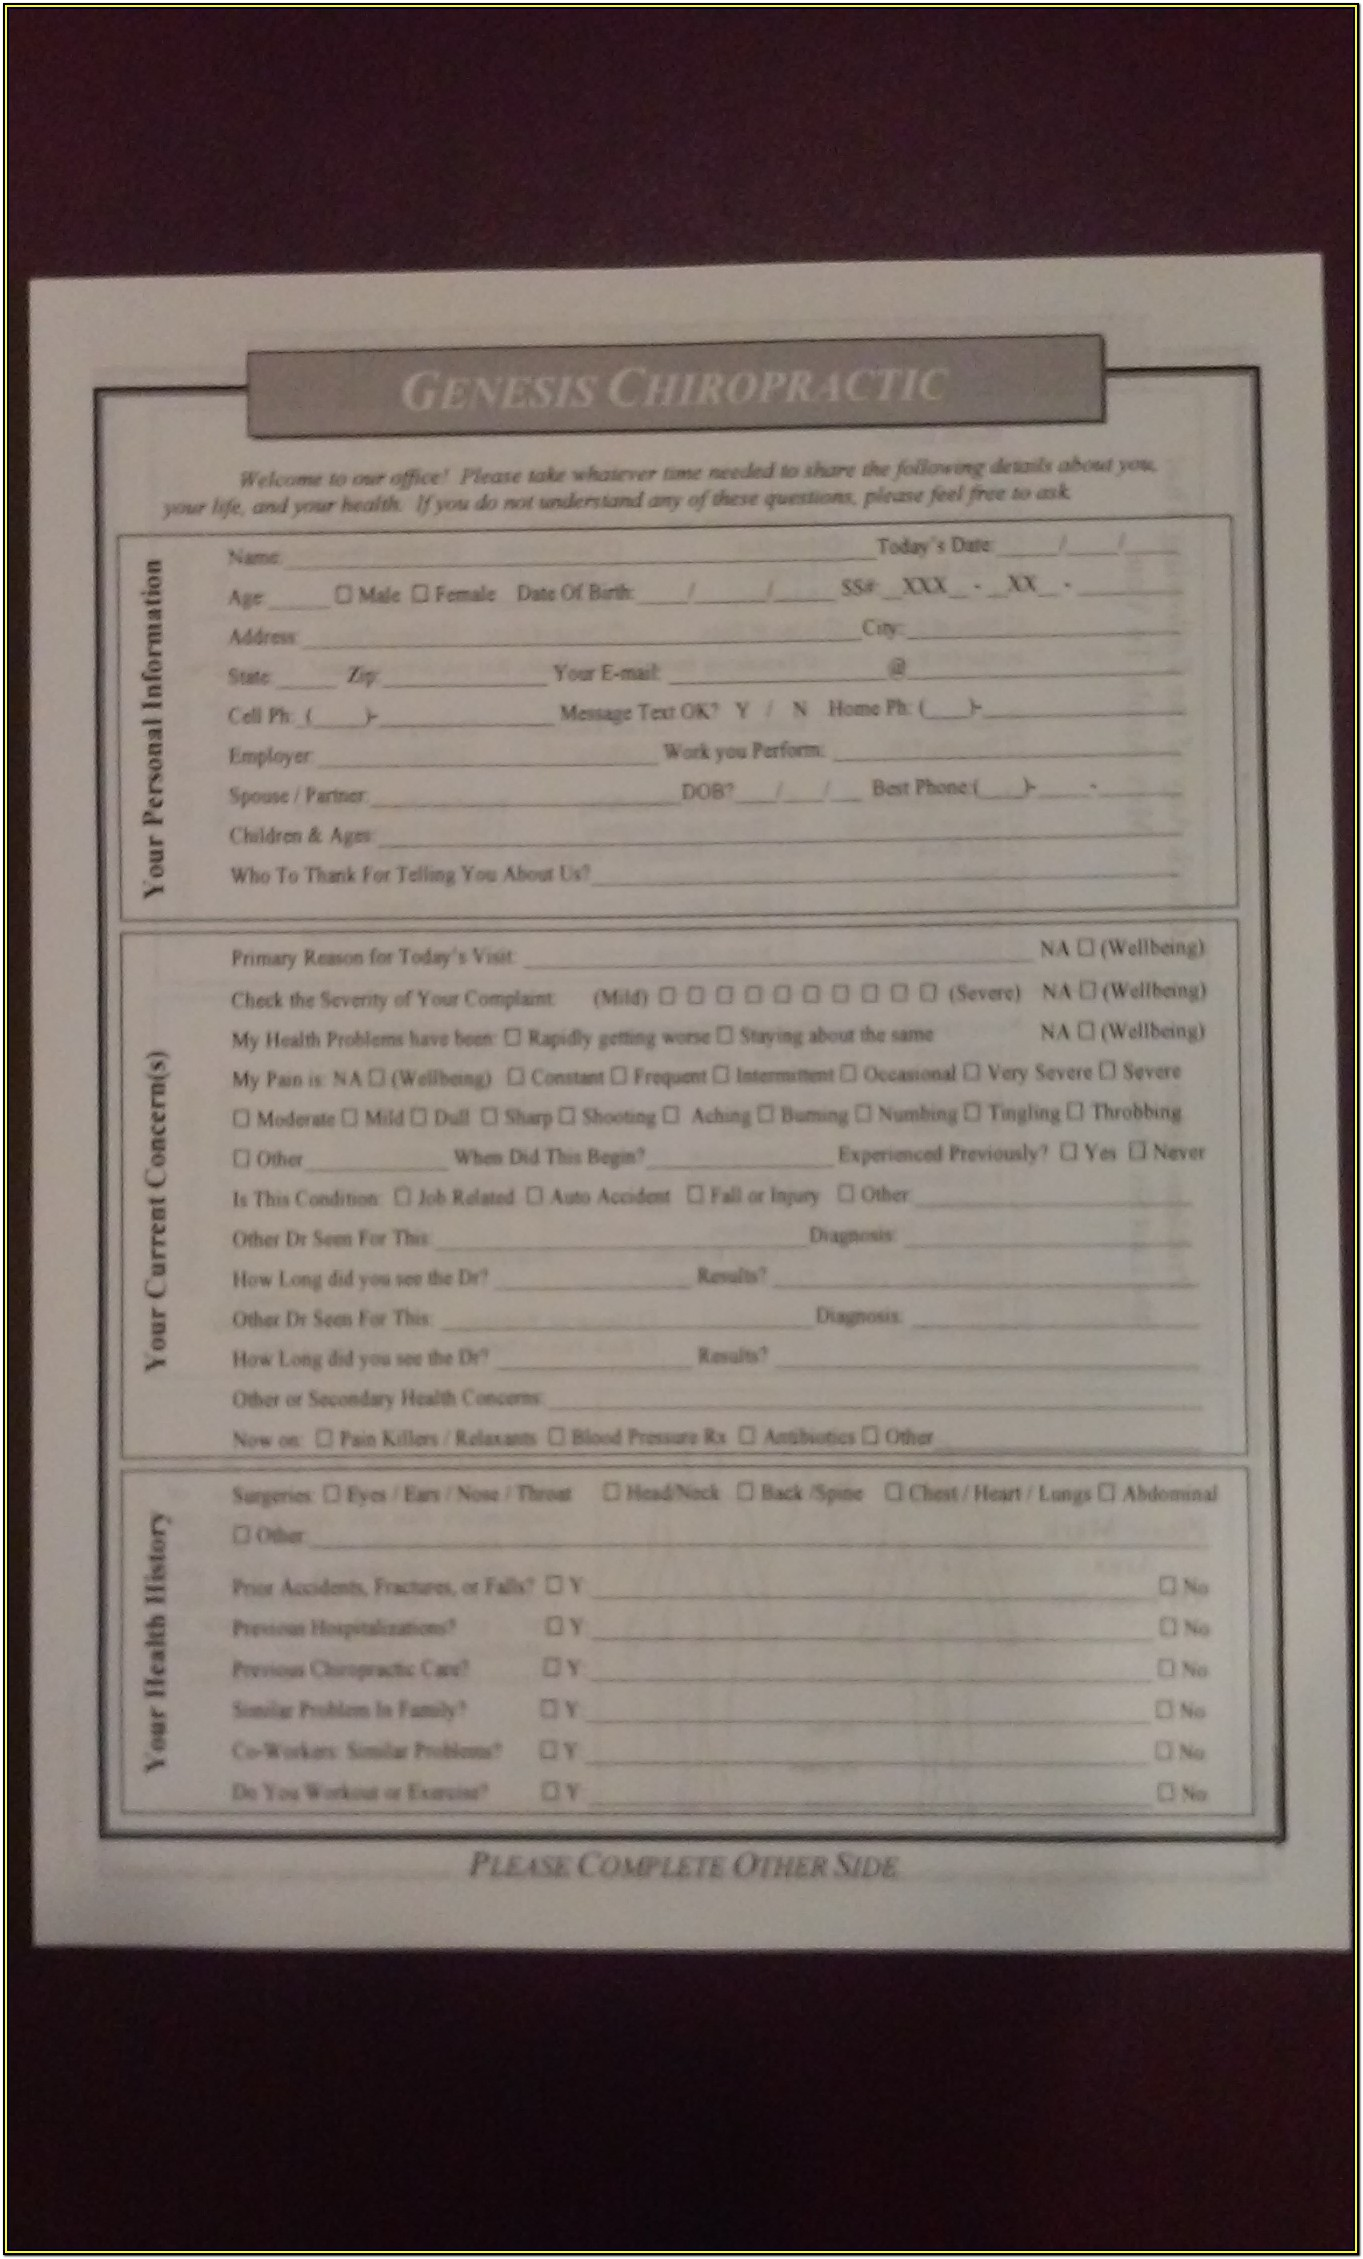 Free Printable Chiropractic New Patient Forms